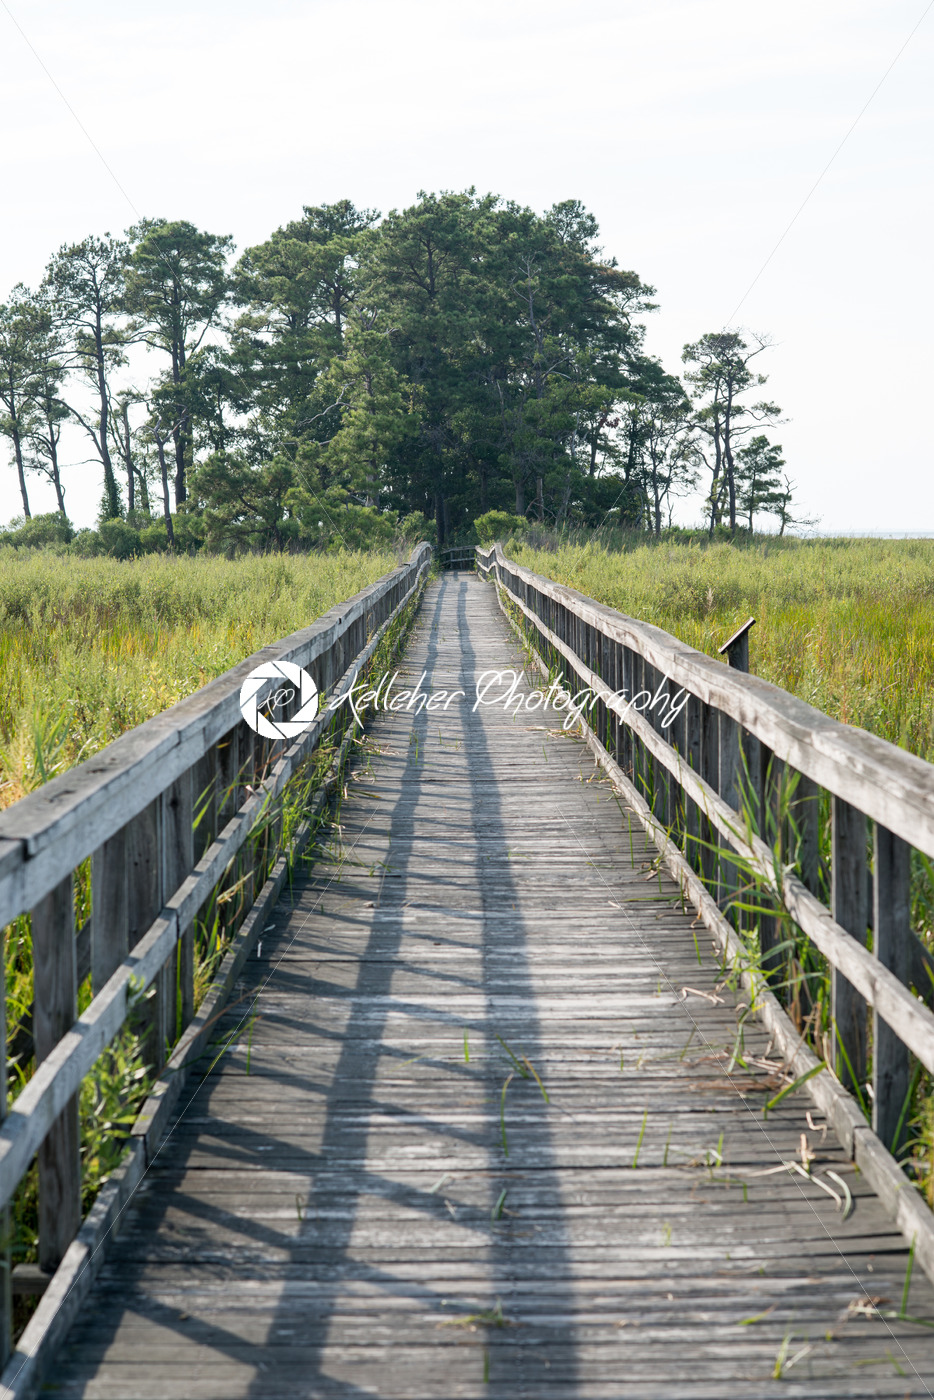 Boardwalk through marsh reeds near Rock Hall, MD - Kelleher Photography Store